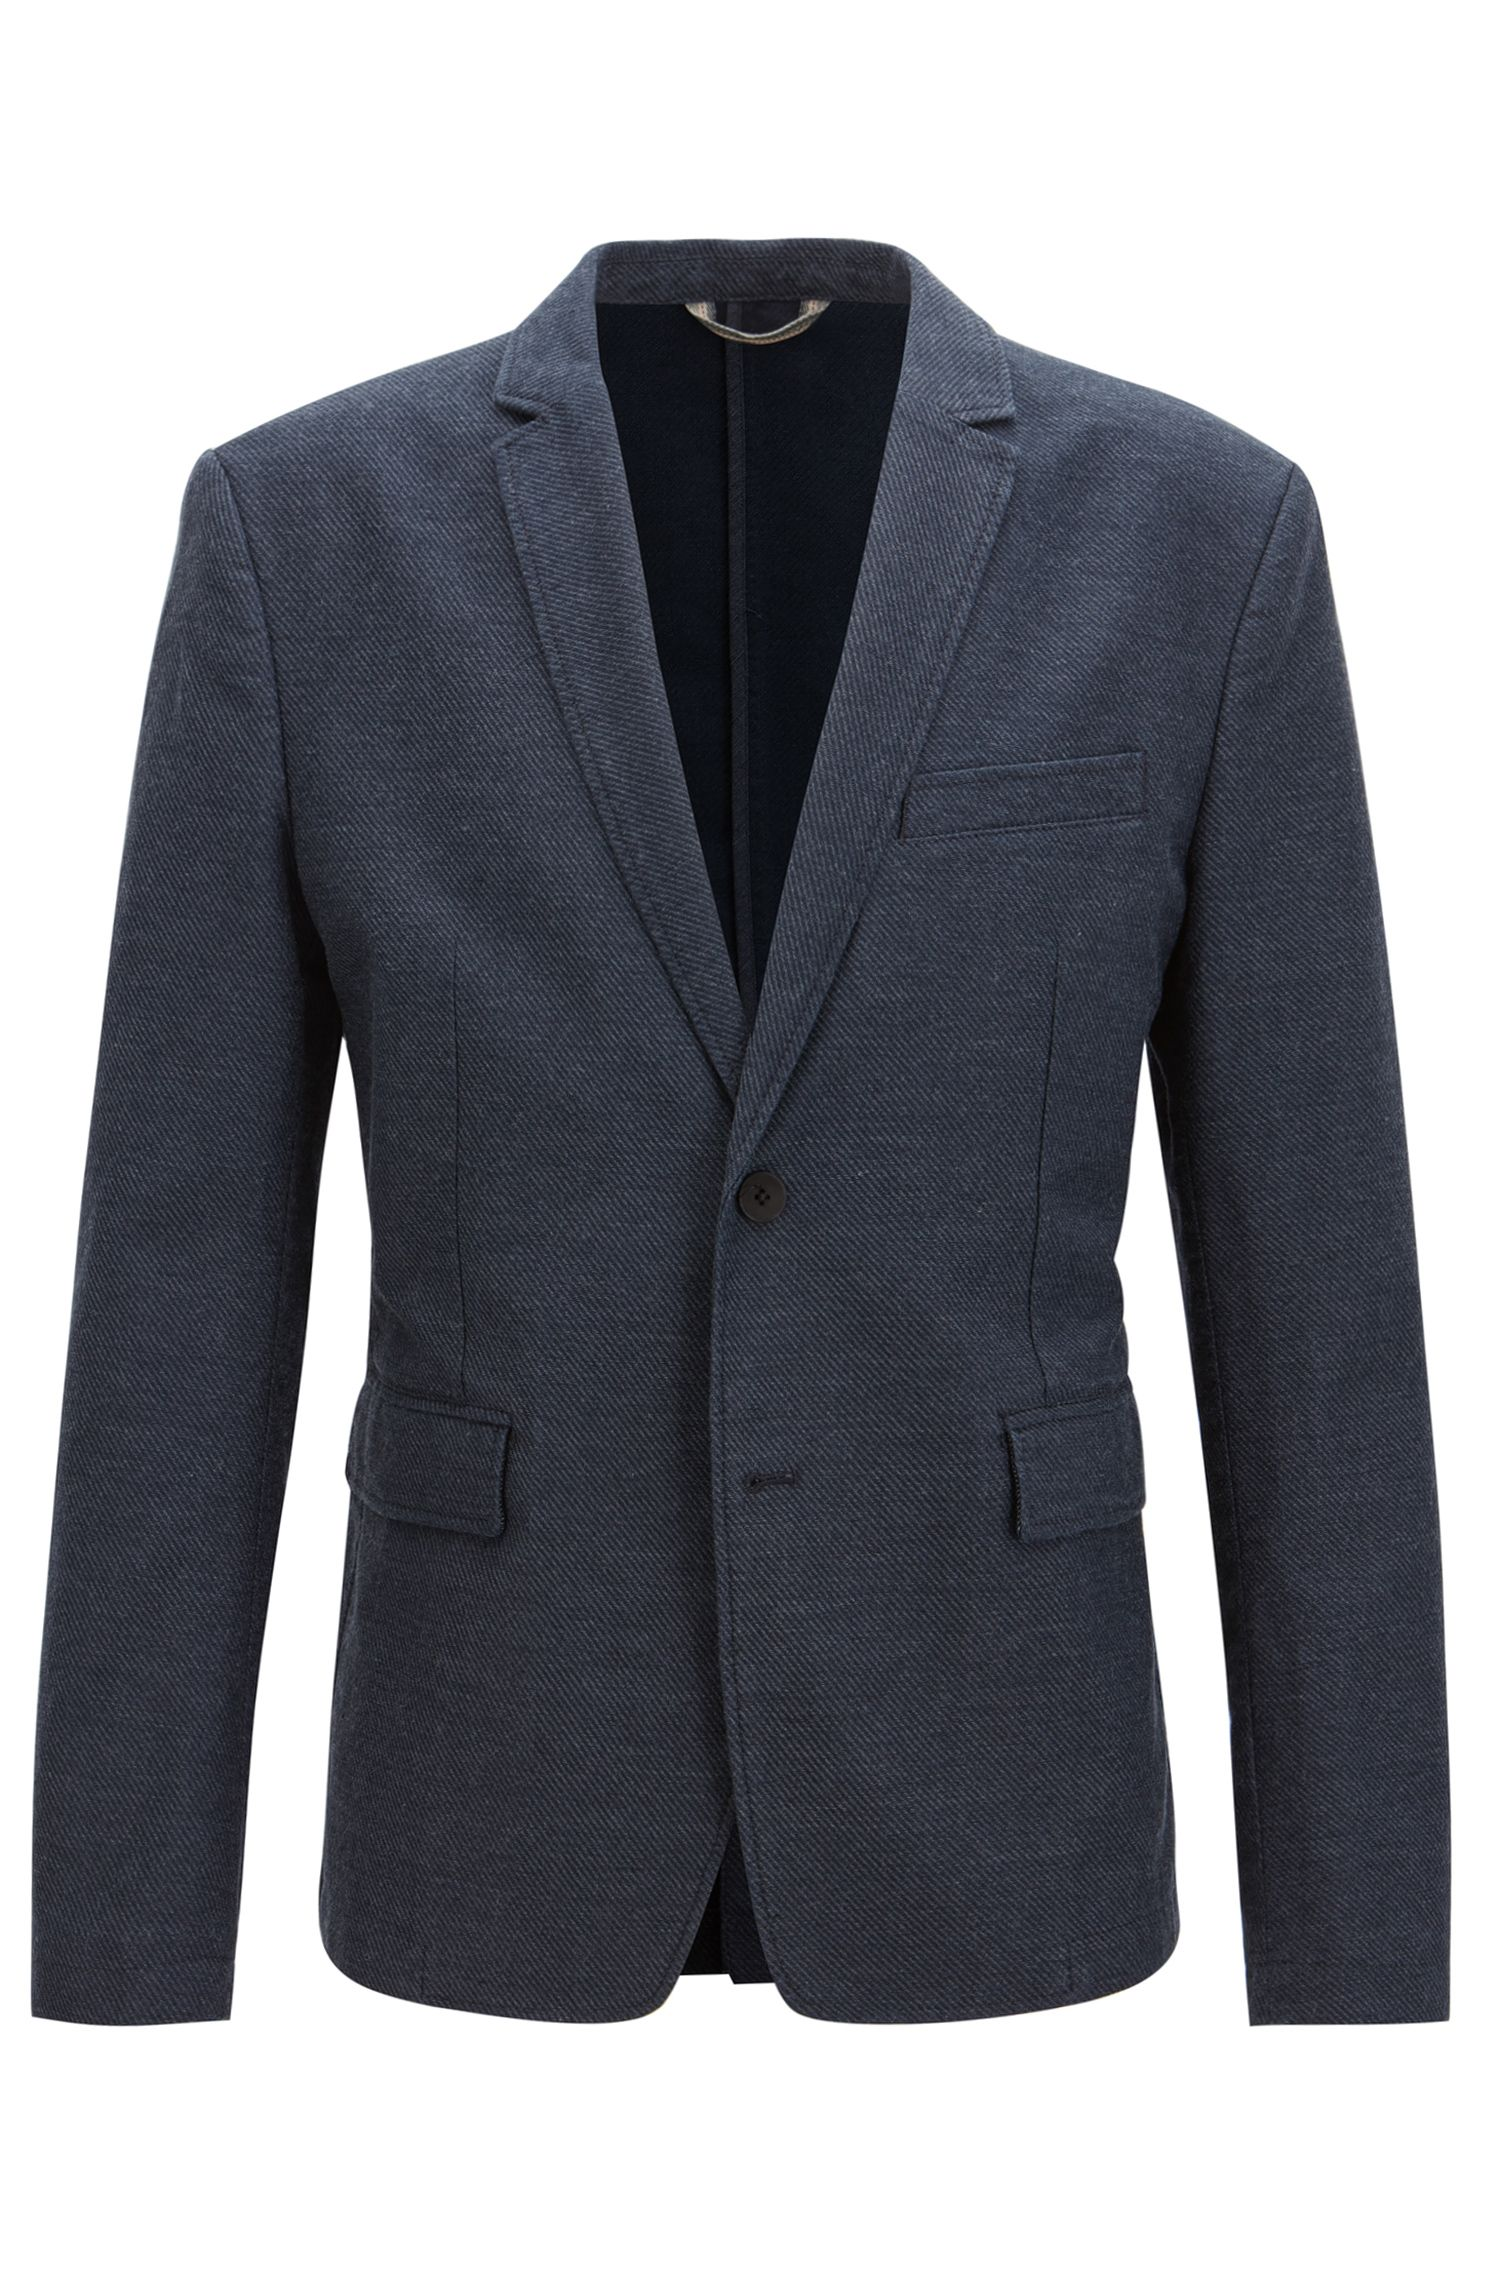 Twill Stretch Cotton Linen Sport Coat, Slim Fit | Bedge BS W, Dark Blue